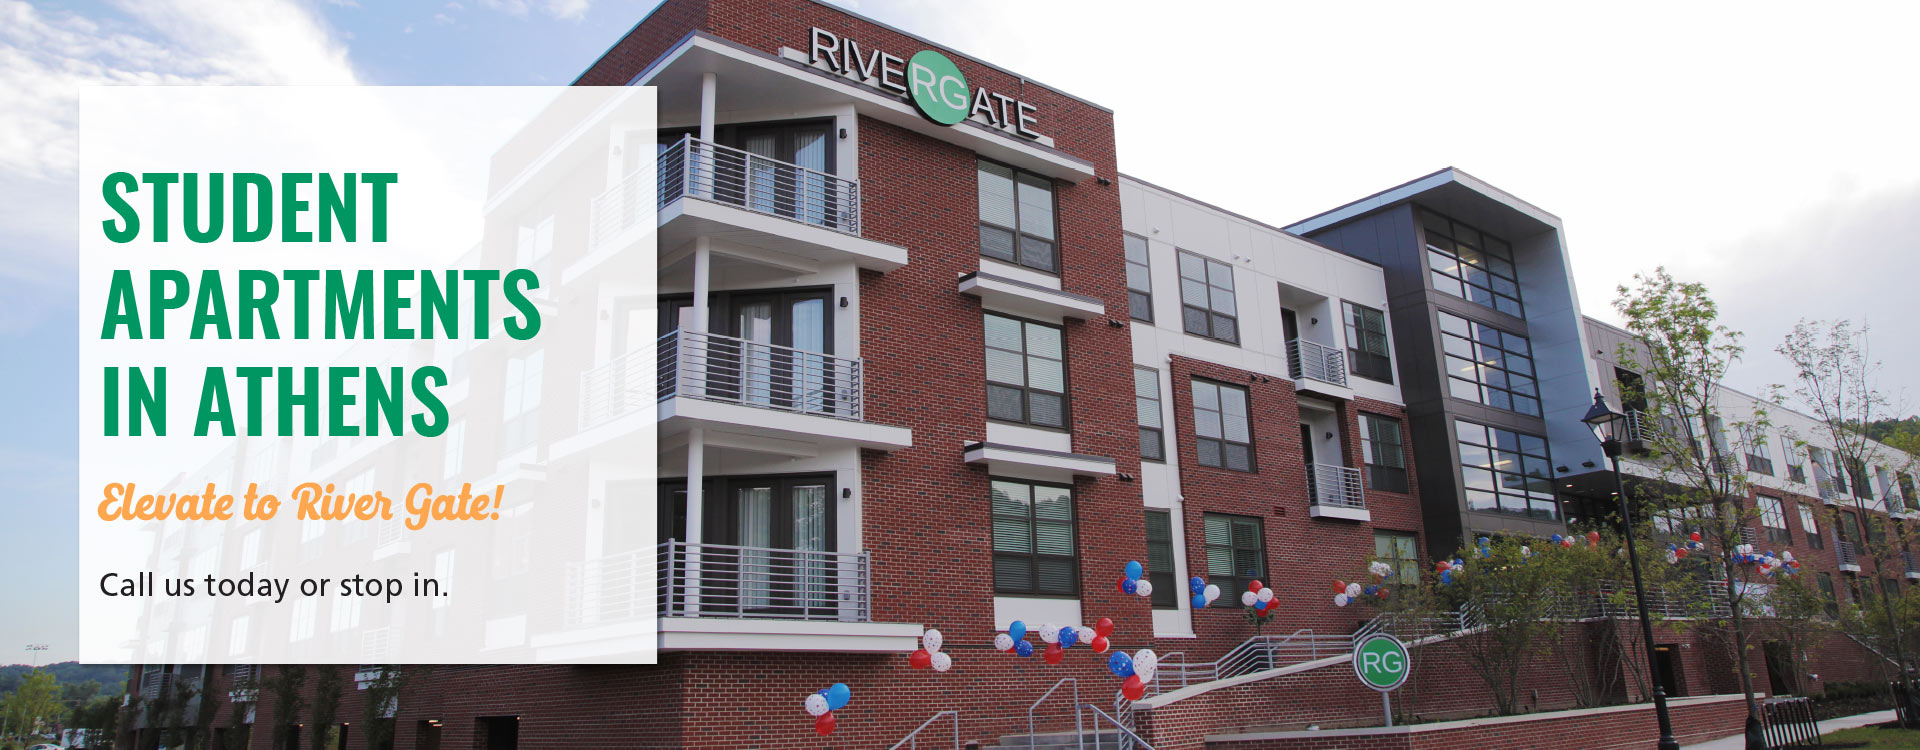 River Gate Apartments - Ohio University Student Housing in Athens, Ohio